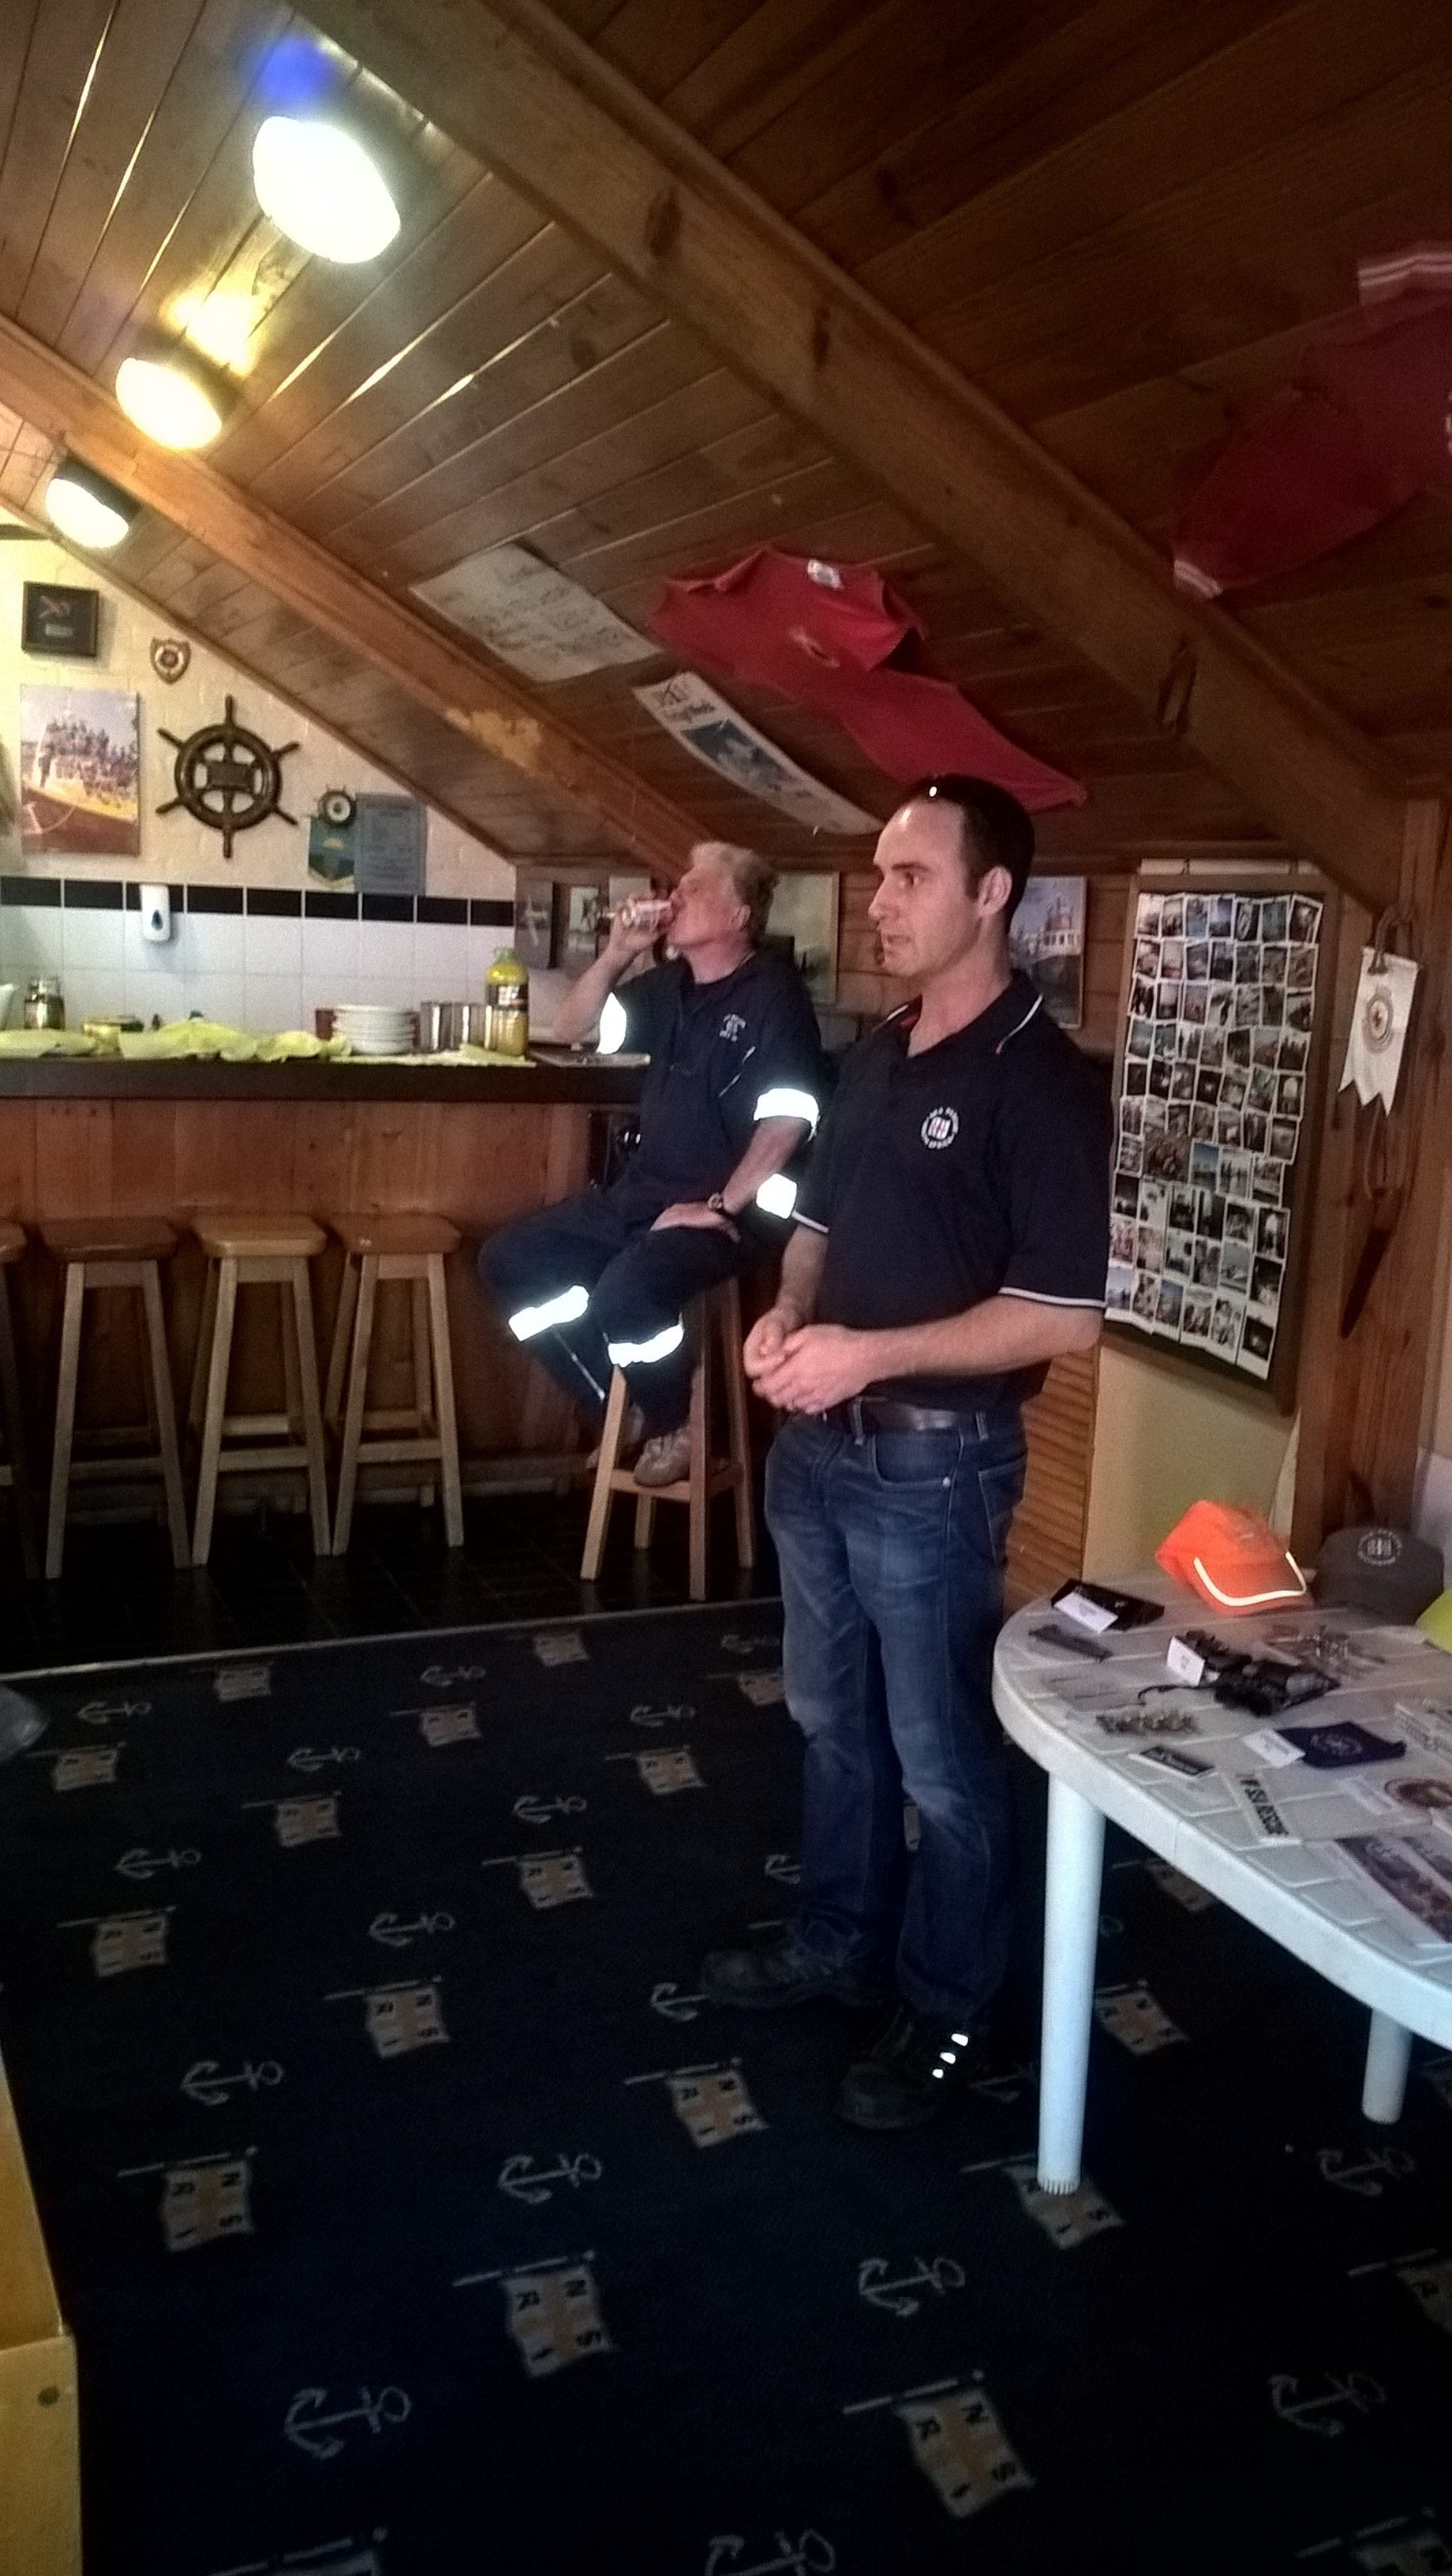 Quentin Botha (Station Commander) sharing a rescue story